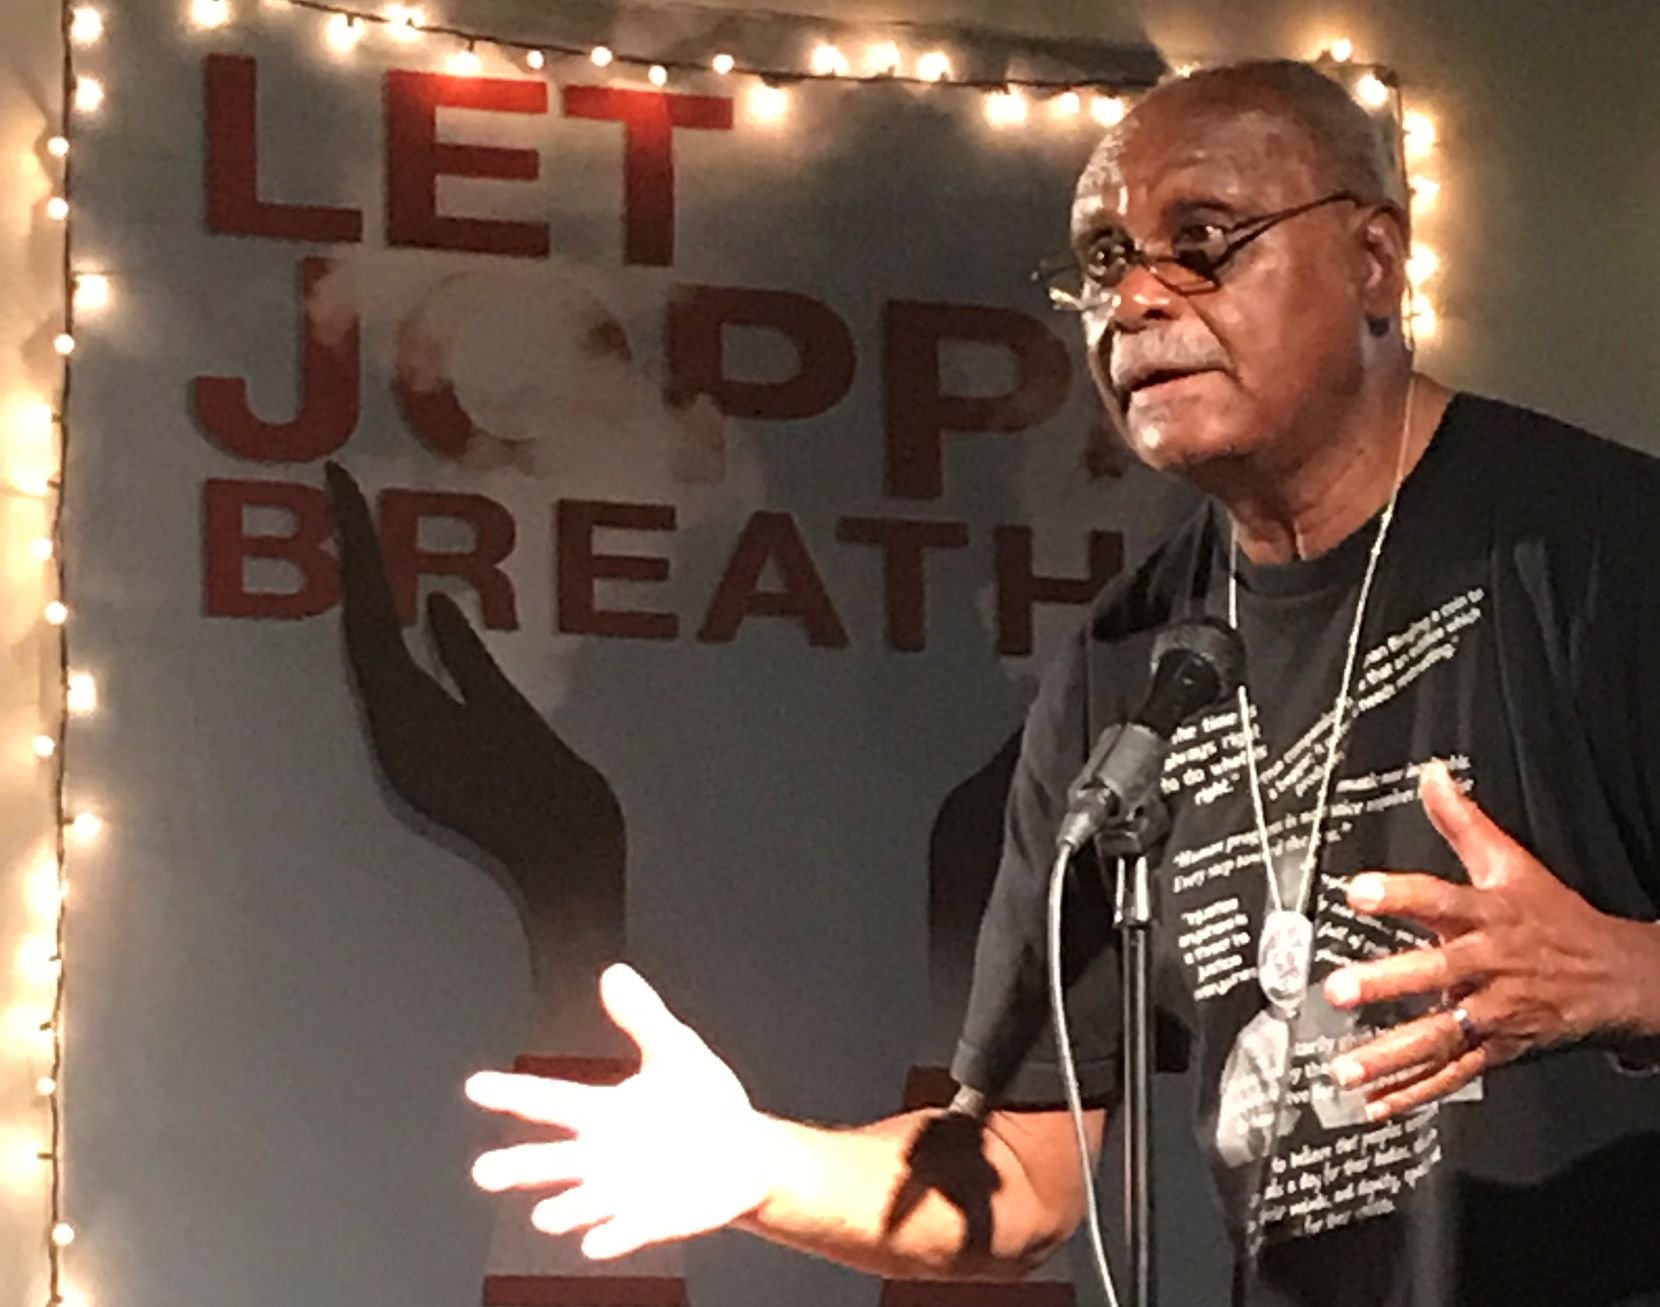 The Rev. Peter Johnson implores residents to support Joppa two years ago during a fundraiser for one of Dallas' oldest African-American neighborhoods.